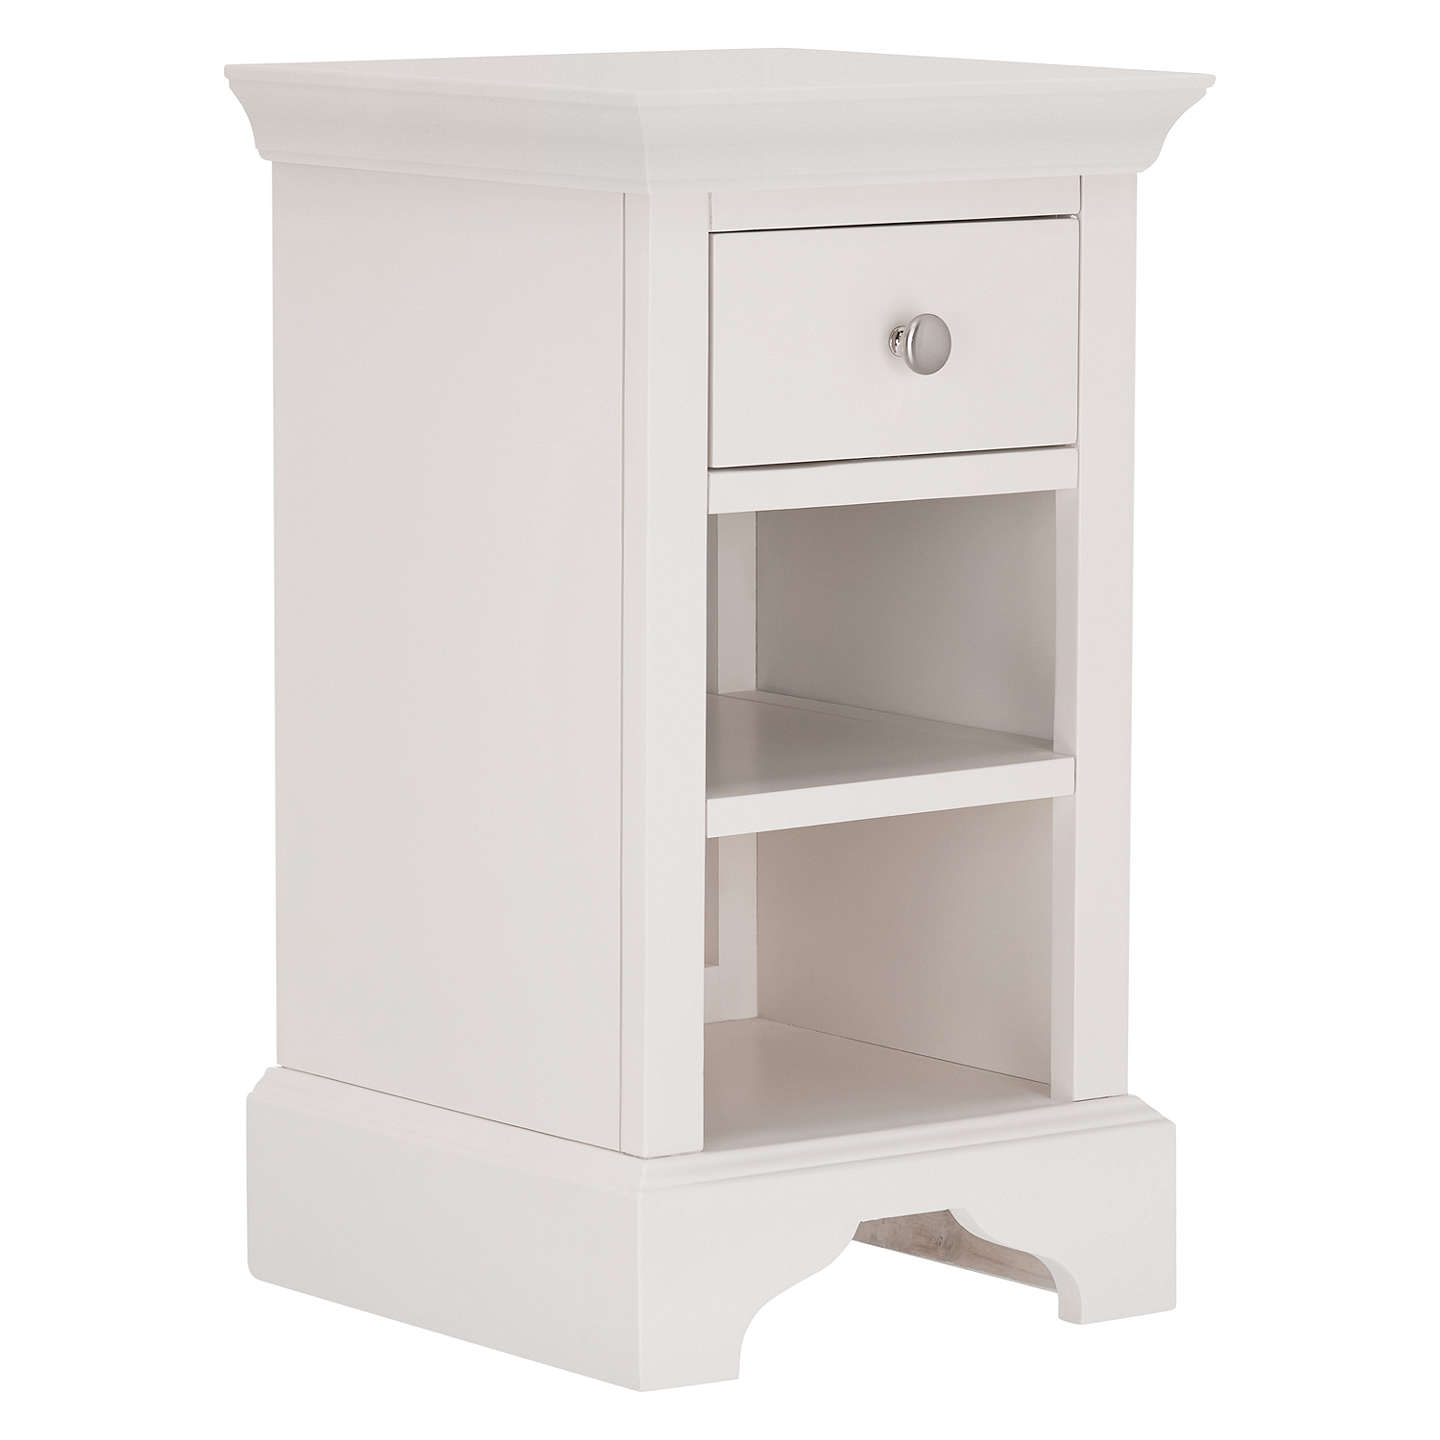 John Lewis Lymington 1 Drawer Bedside Table, White by John Lewis